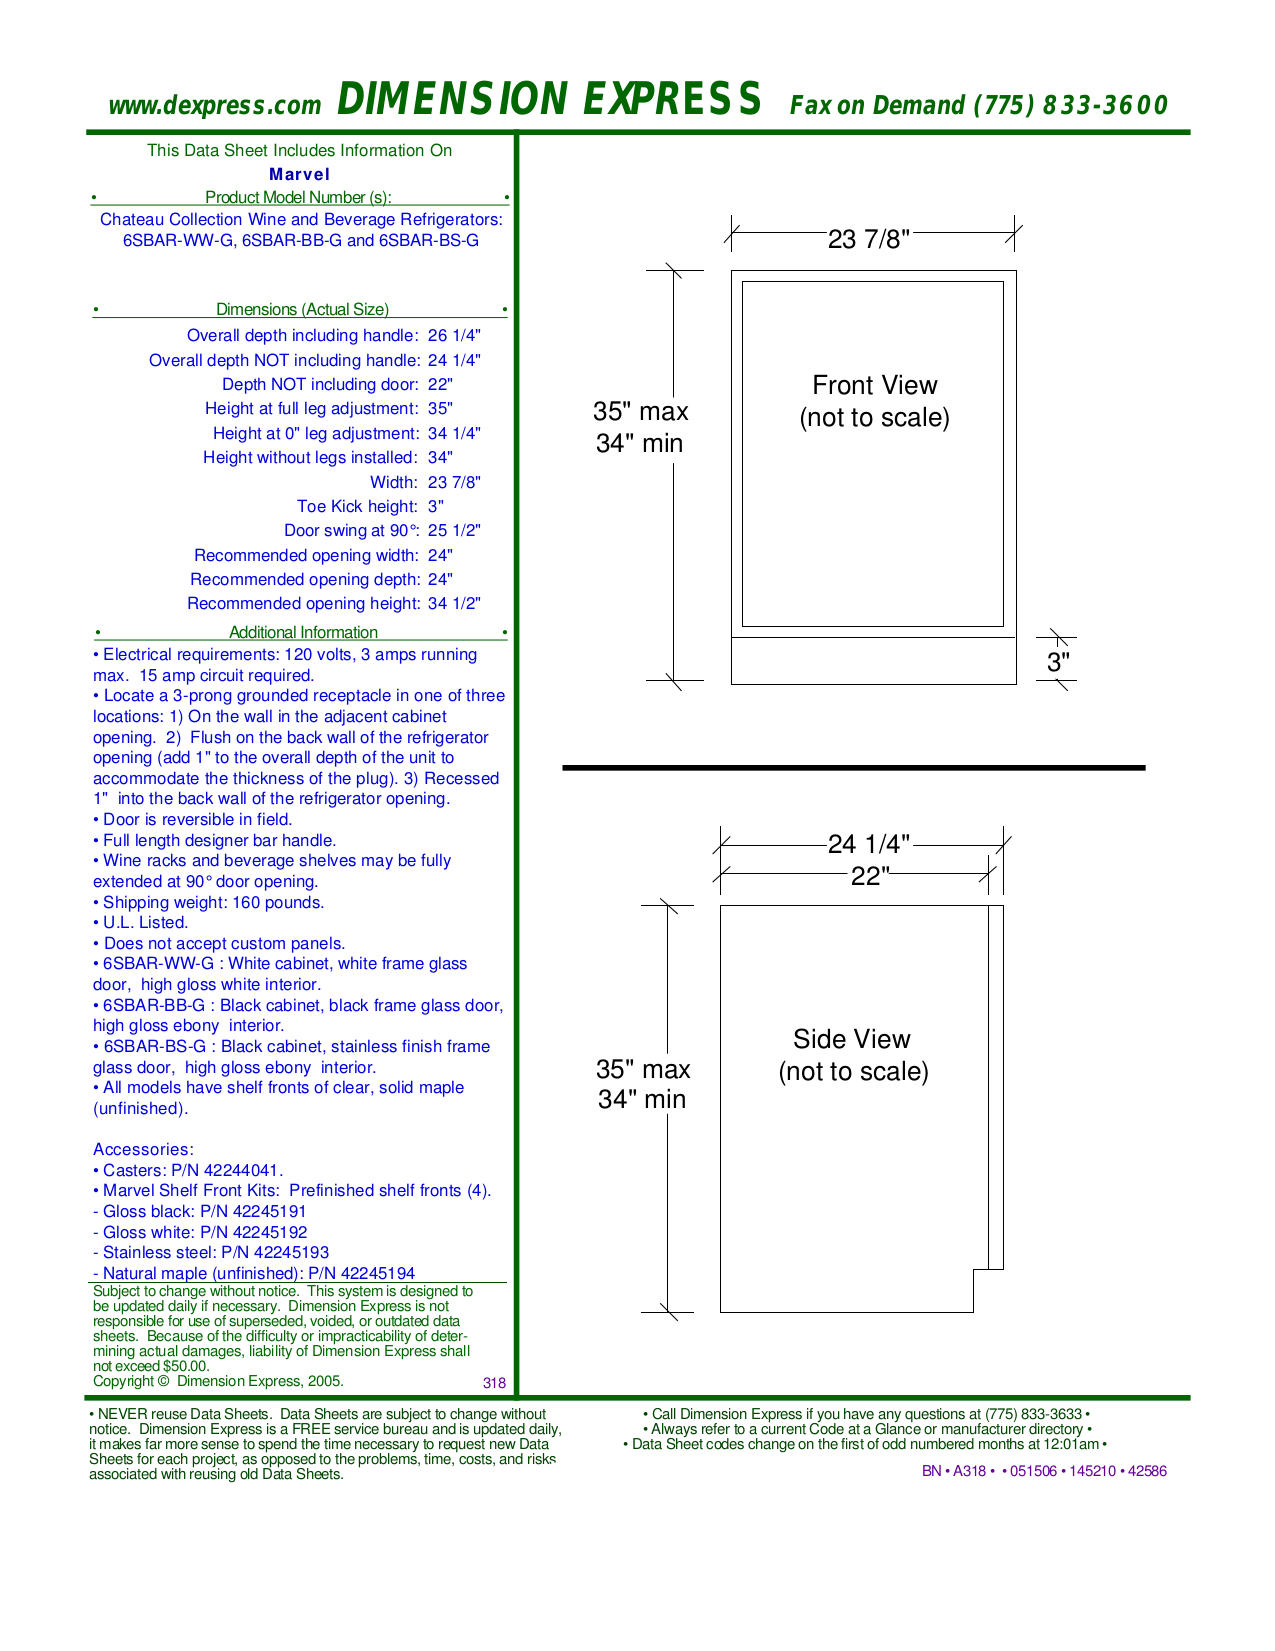 pdf for Marvel Refrigerator 6SBAR-BB-G manual